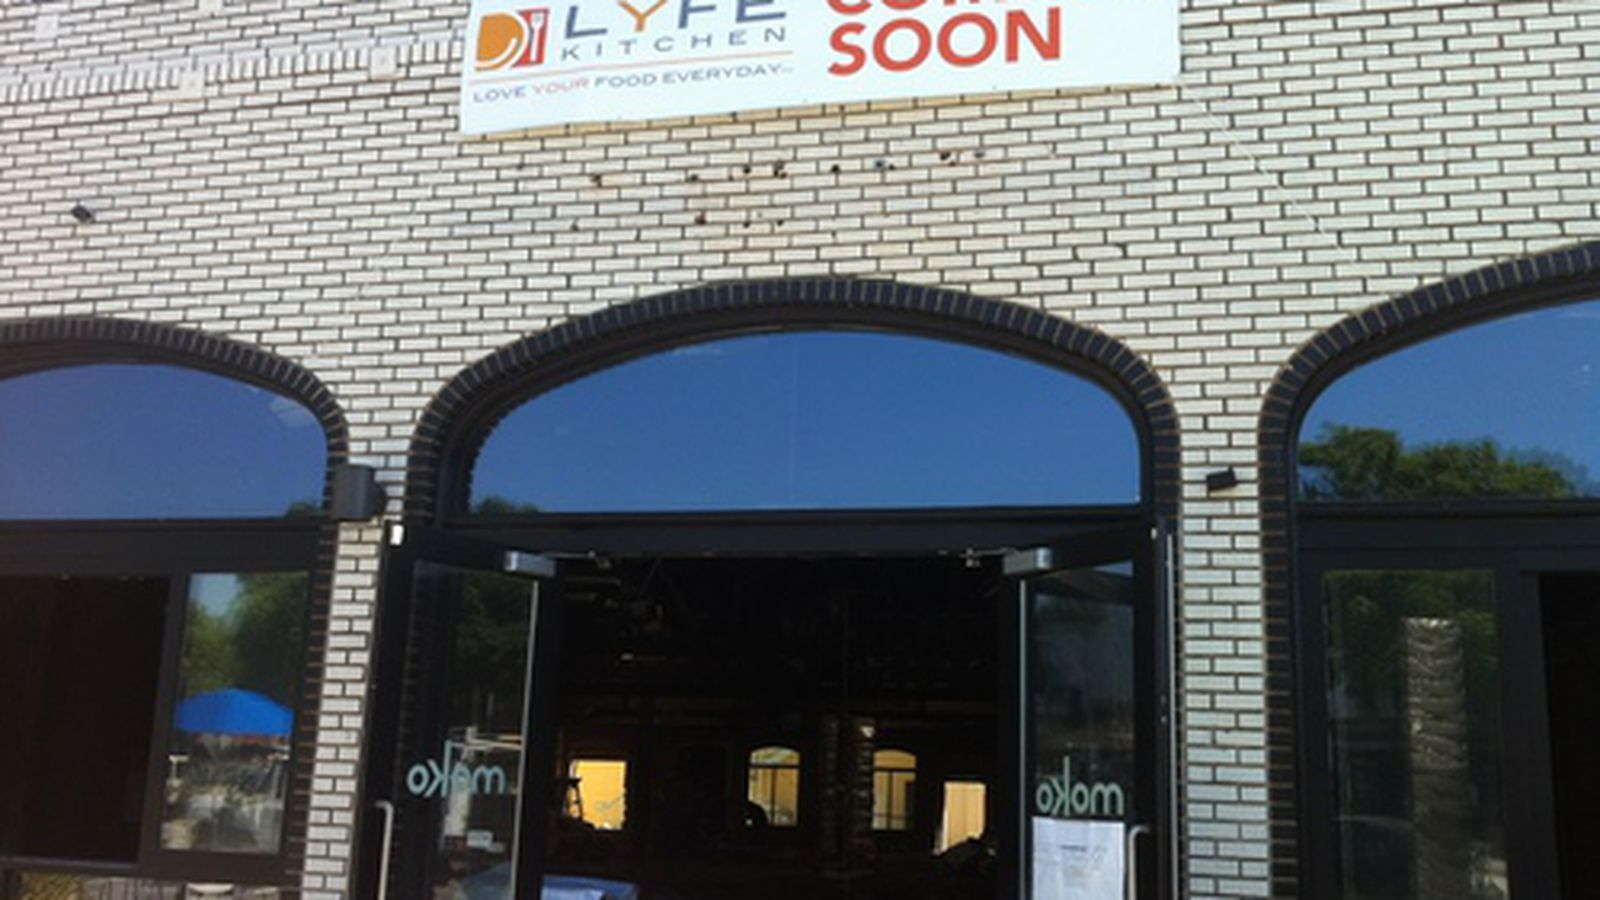 Lyfe Kitchen Posted Signage This Week In Culver City Eater La